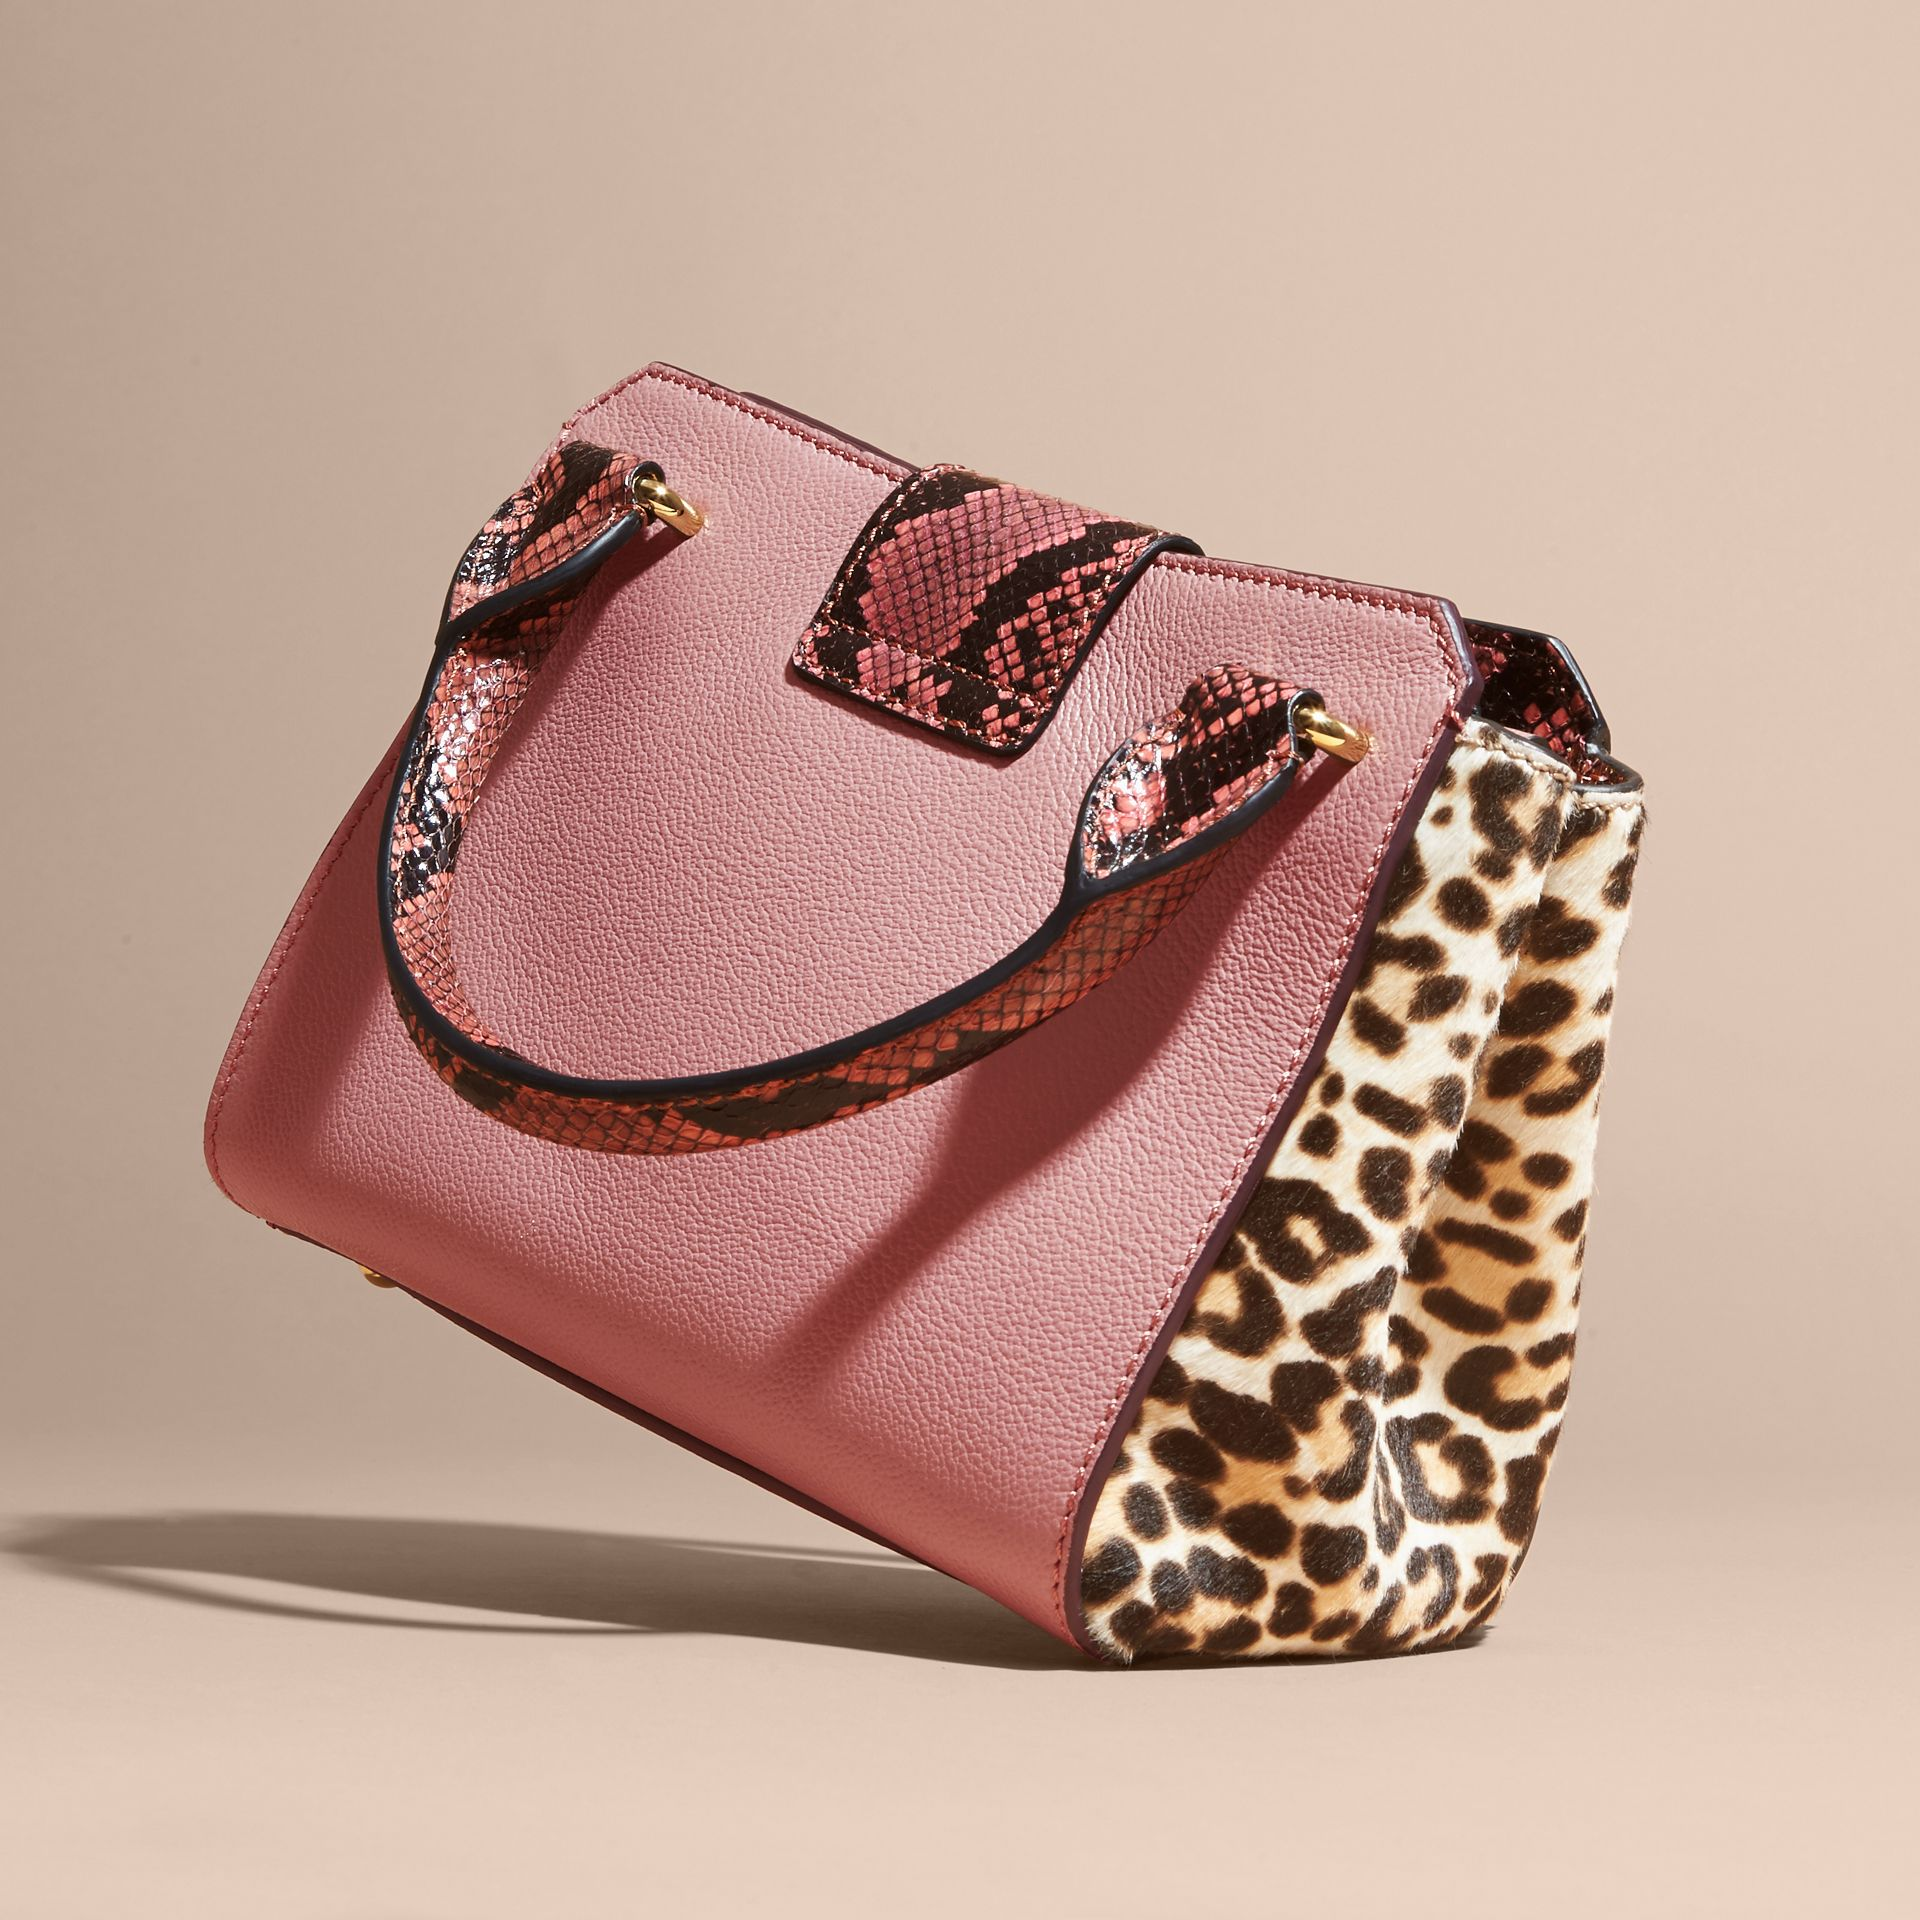 Dusty pink The Small Buckle Tote in Leather and  Leopard-print Calfskin Dusty Pink - gallery image 5